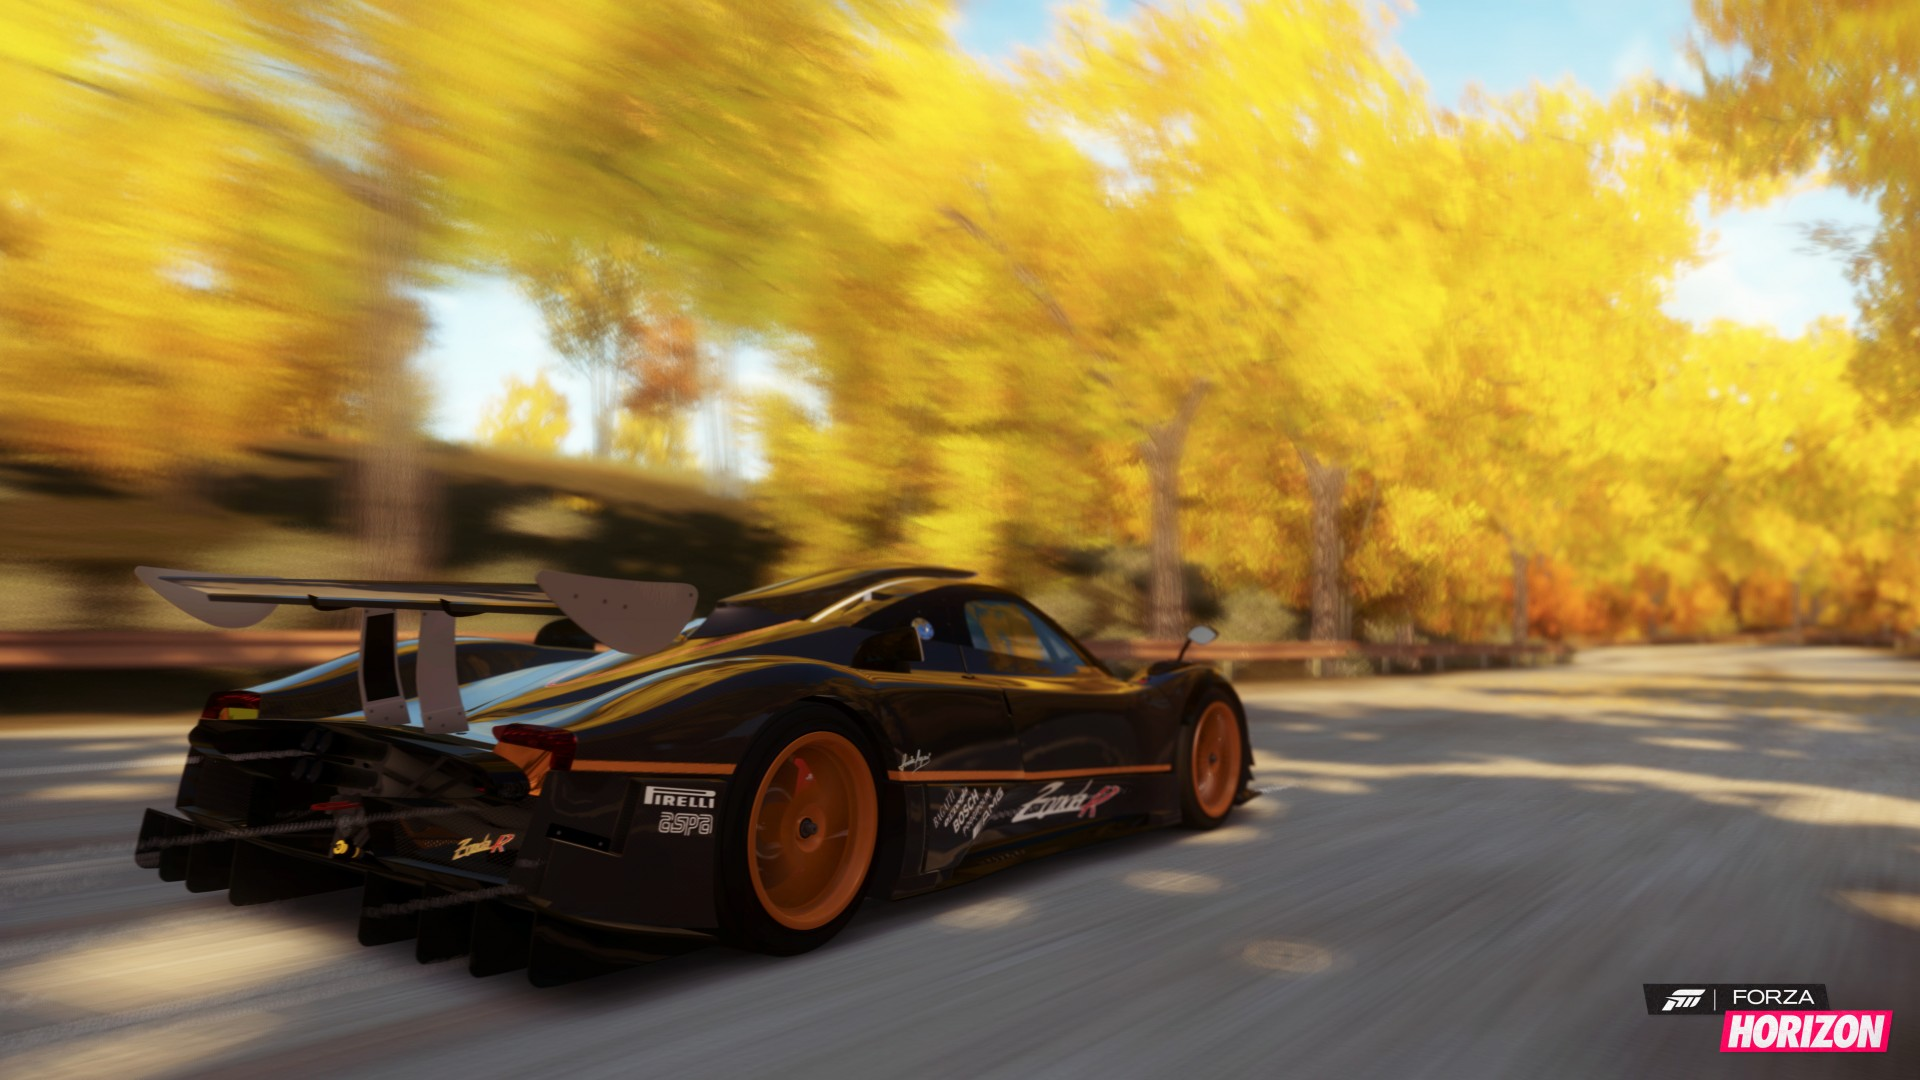 Forza Horizon, 5k, 4k wallpaper, game, car, dodge viper, black, orange, yellow, autumn, race, road, tree, speed, screenshot, 4k, 5k (horizontal)